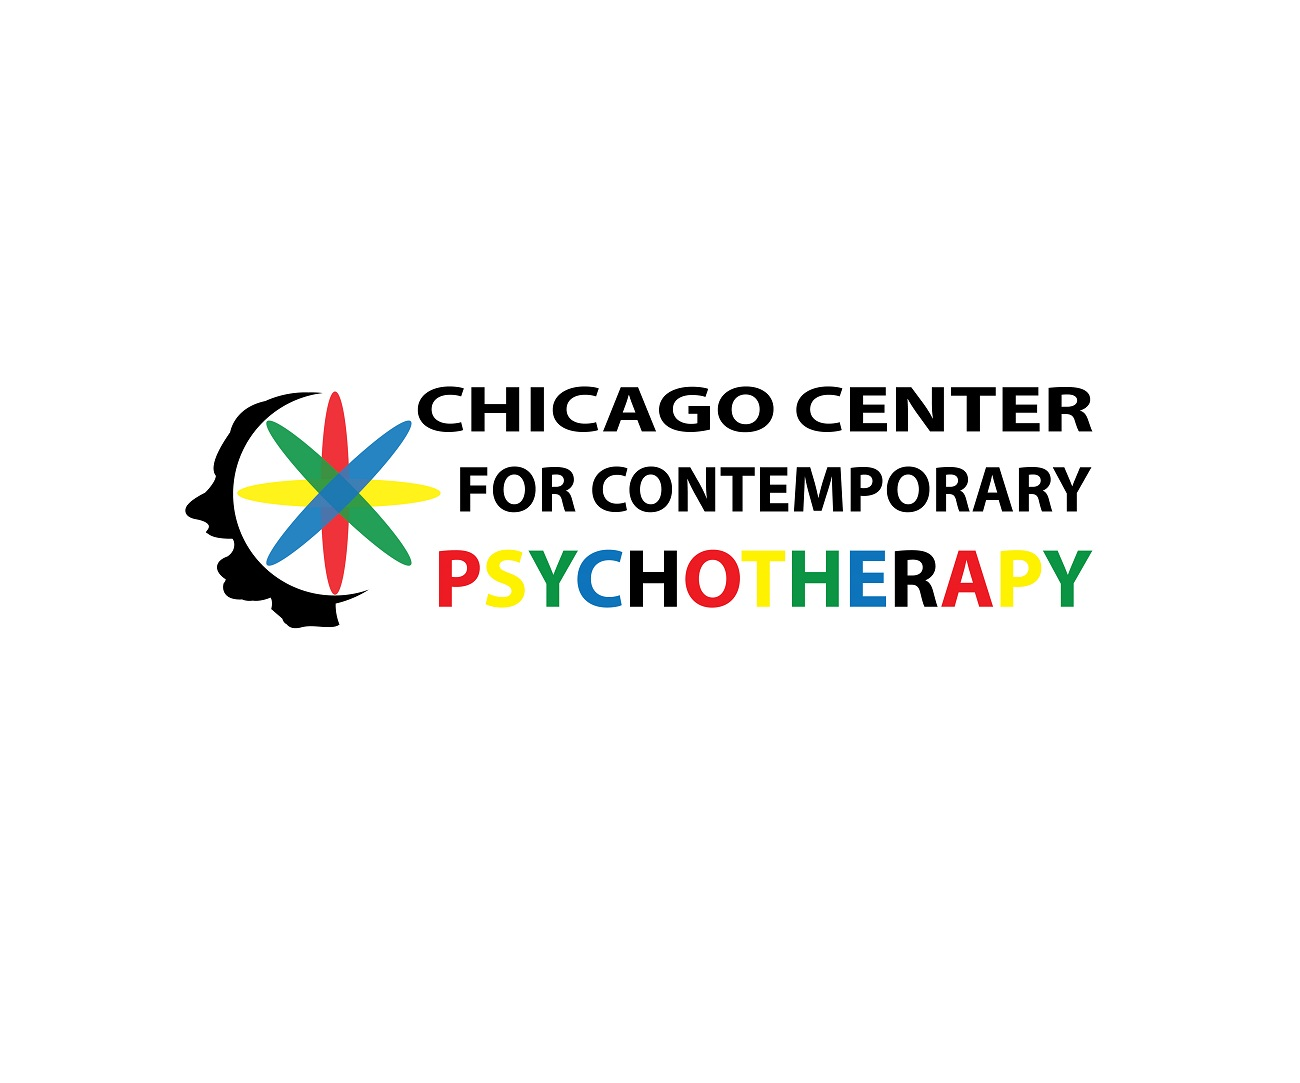 Logo Design by jhunzkie24 - Entry No. 59 in the Logo Design Contest Inspiring Logo Design for Chicago Center for Contemporary Psychotherapy.